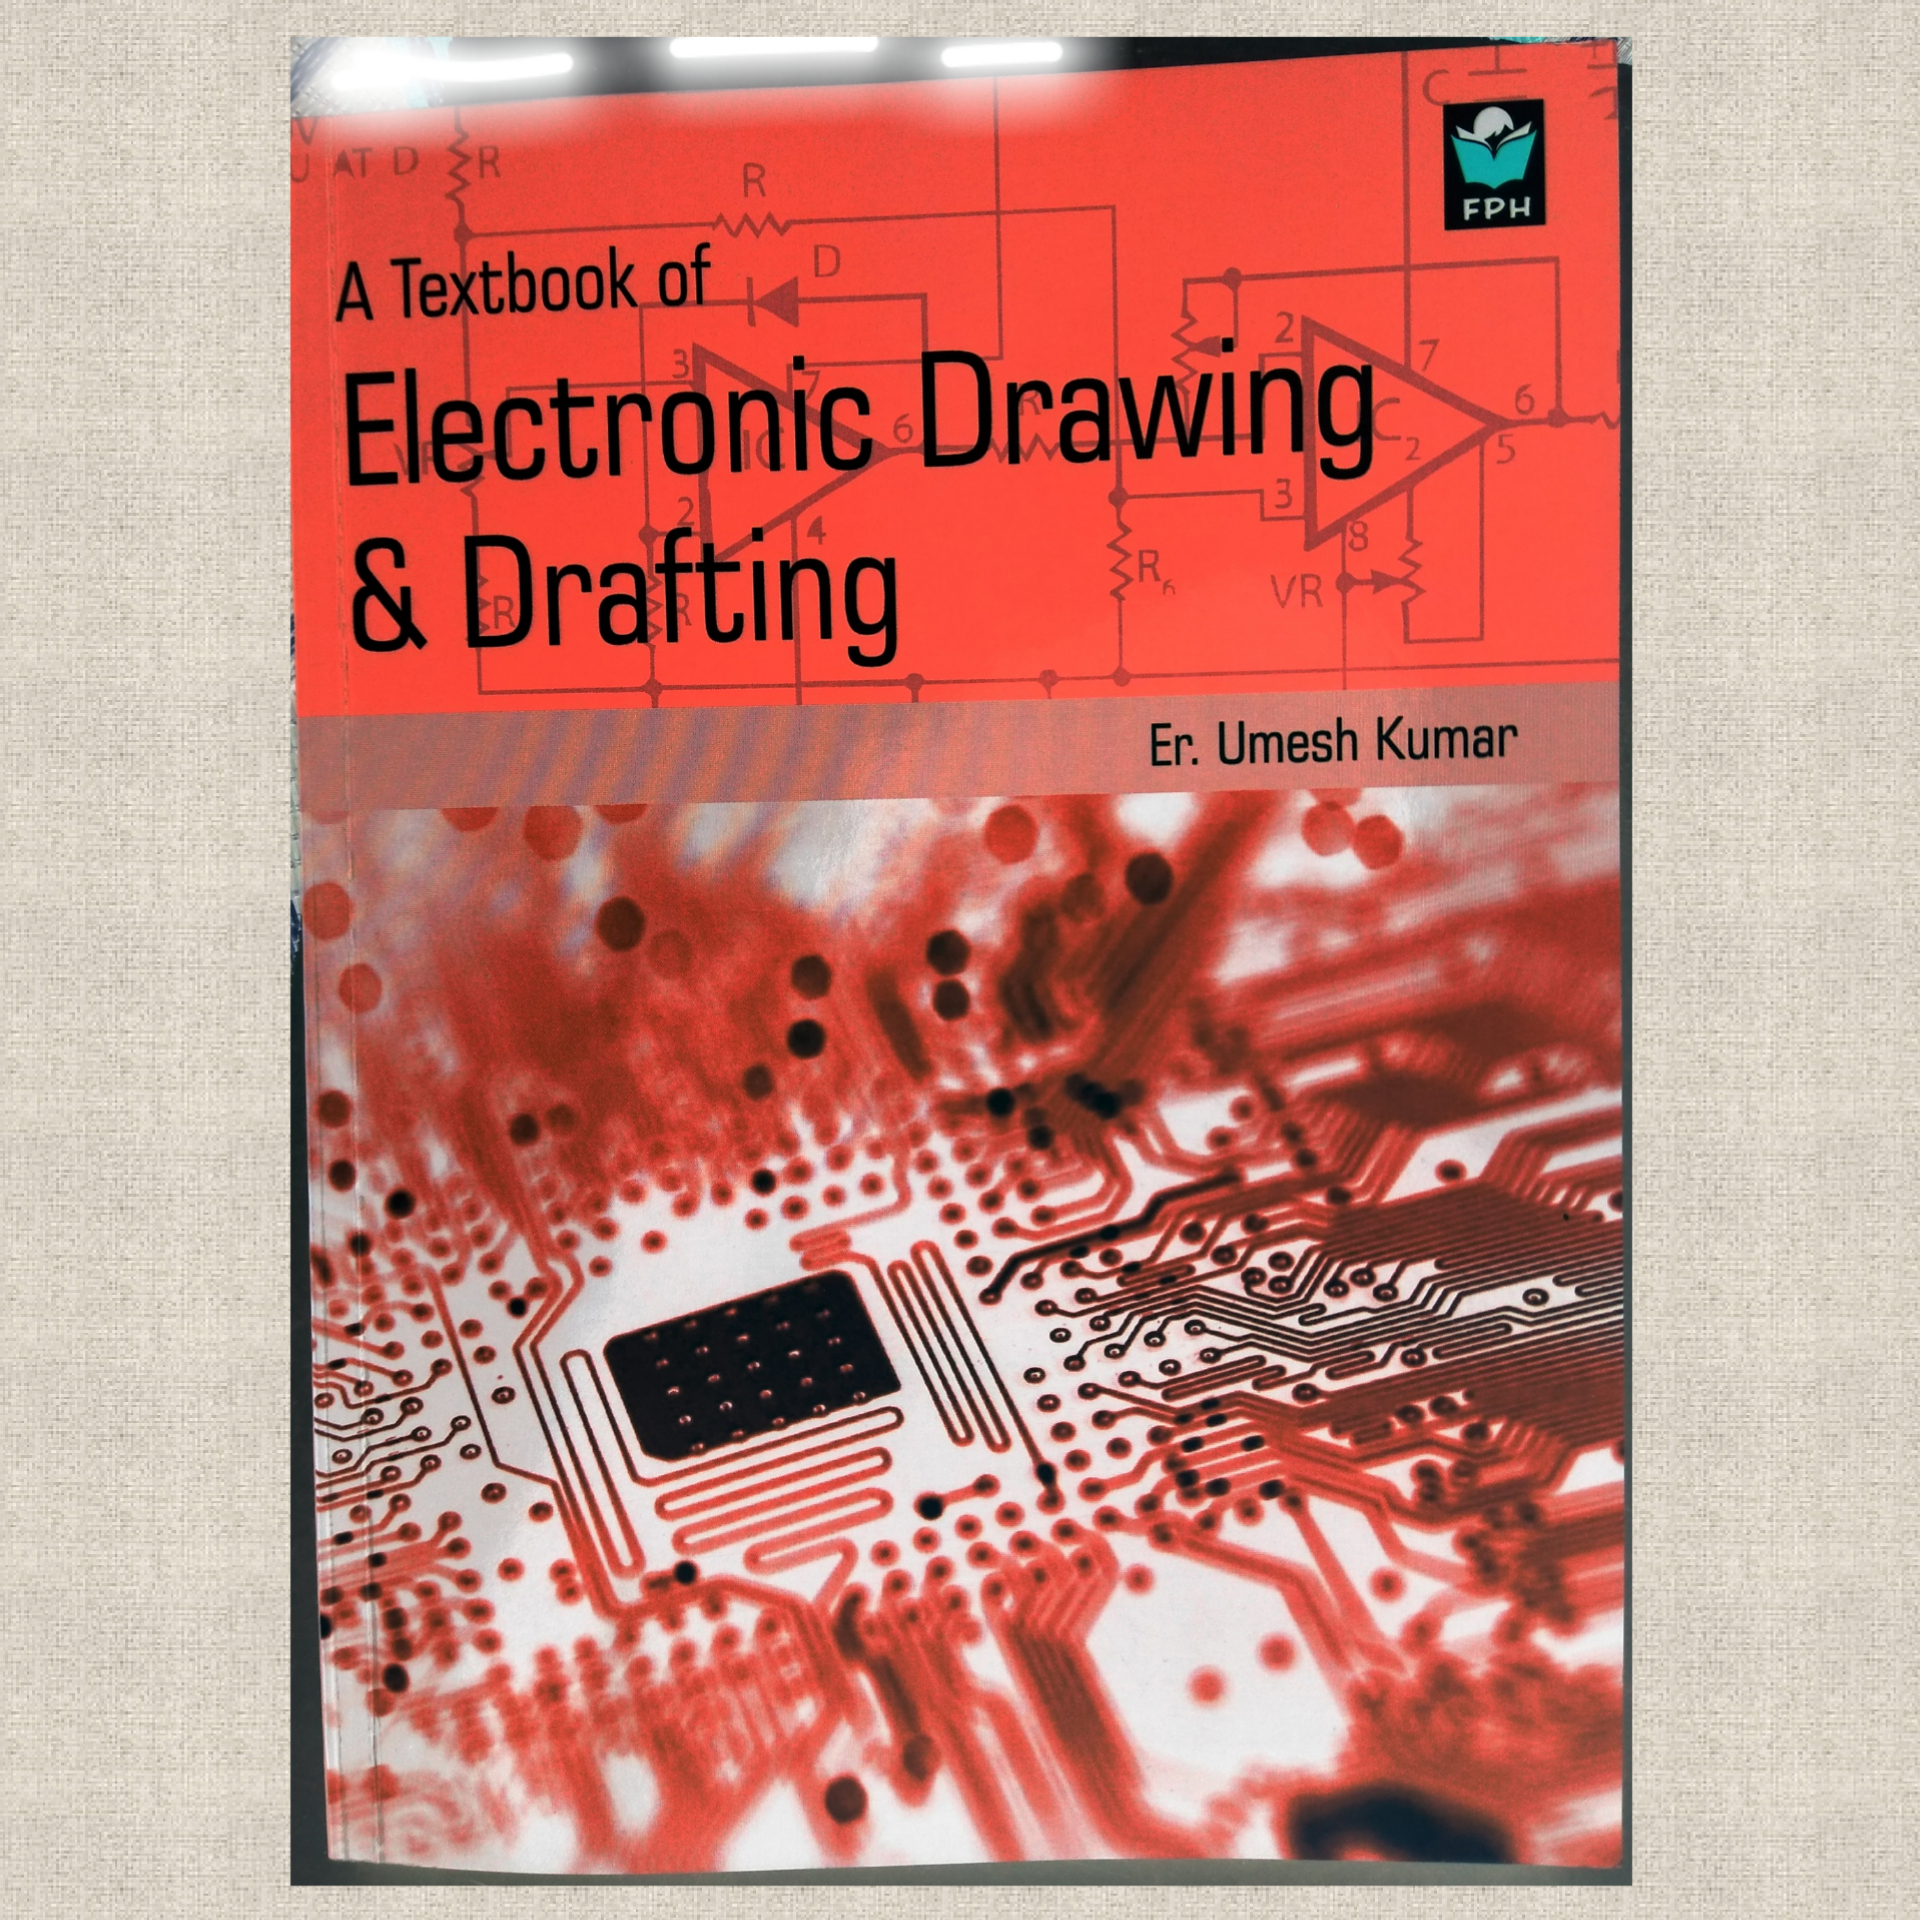 Download electronics drawing and drafting book